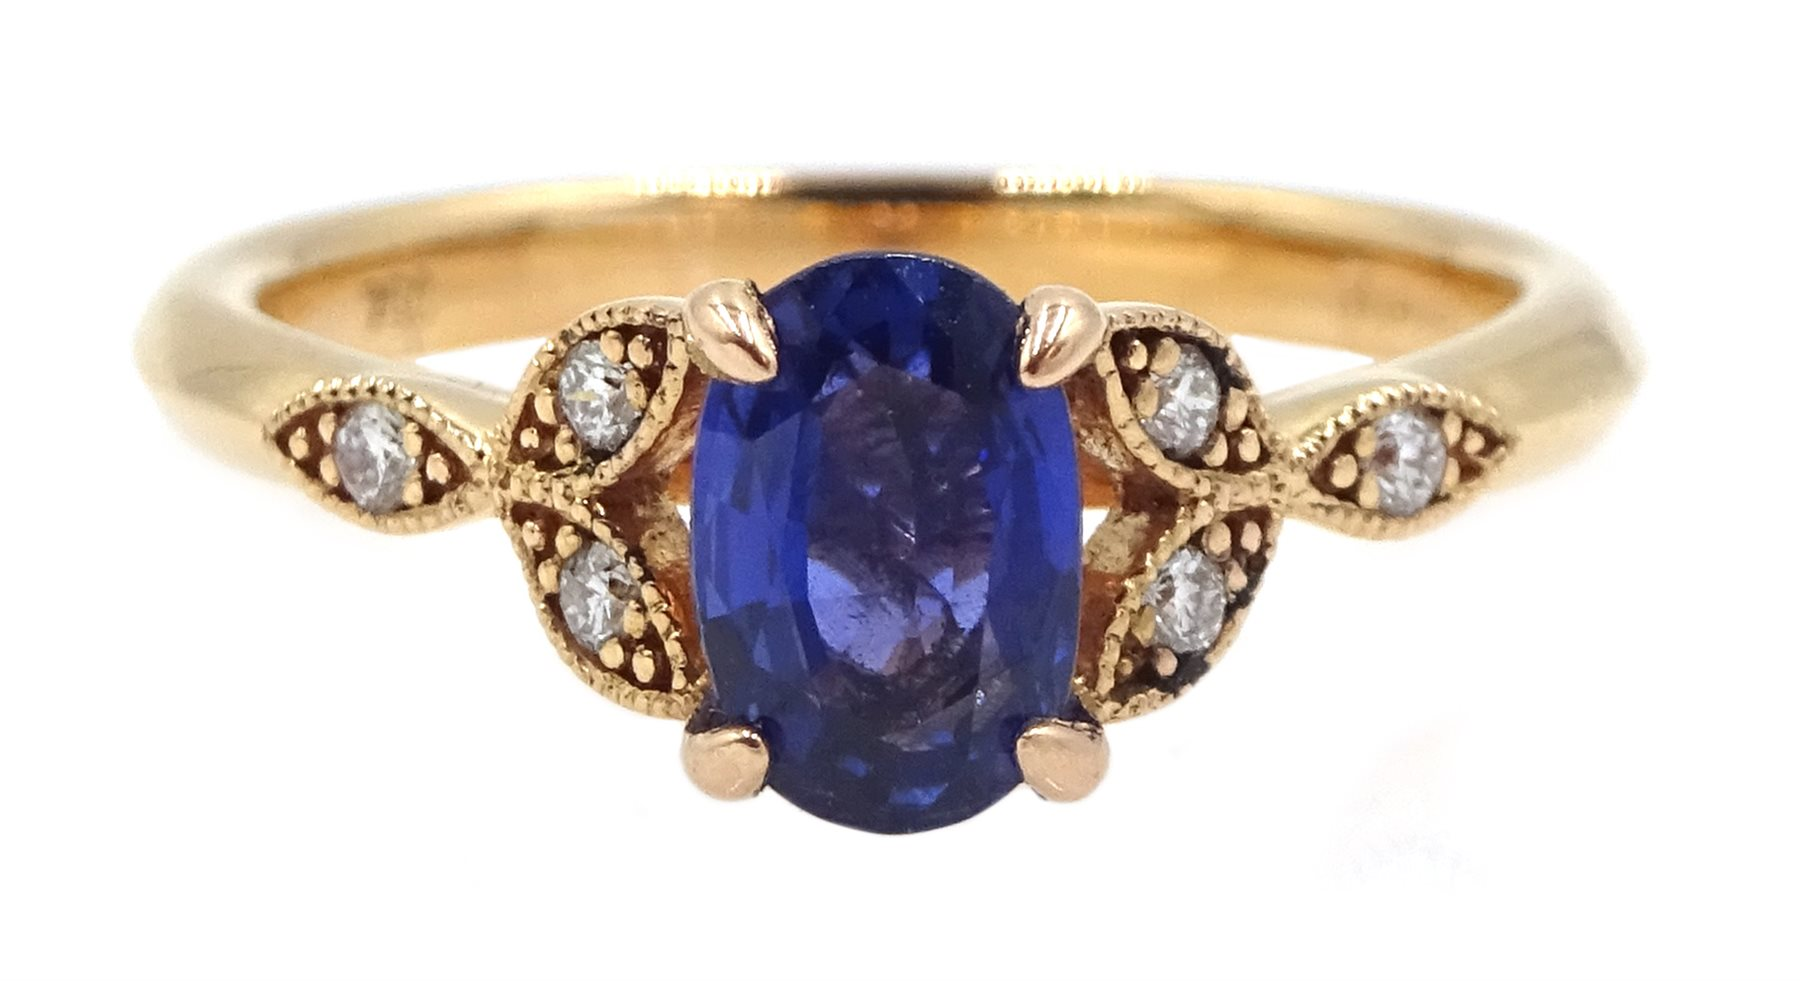 18ct gold oval sapphire ring, with diamond set shoulders, hallmarked, sapphire approx 0.80 carat